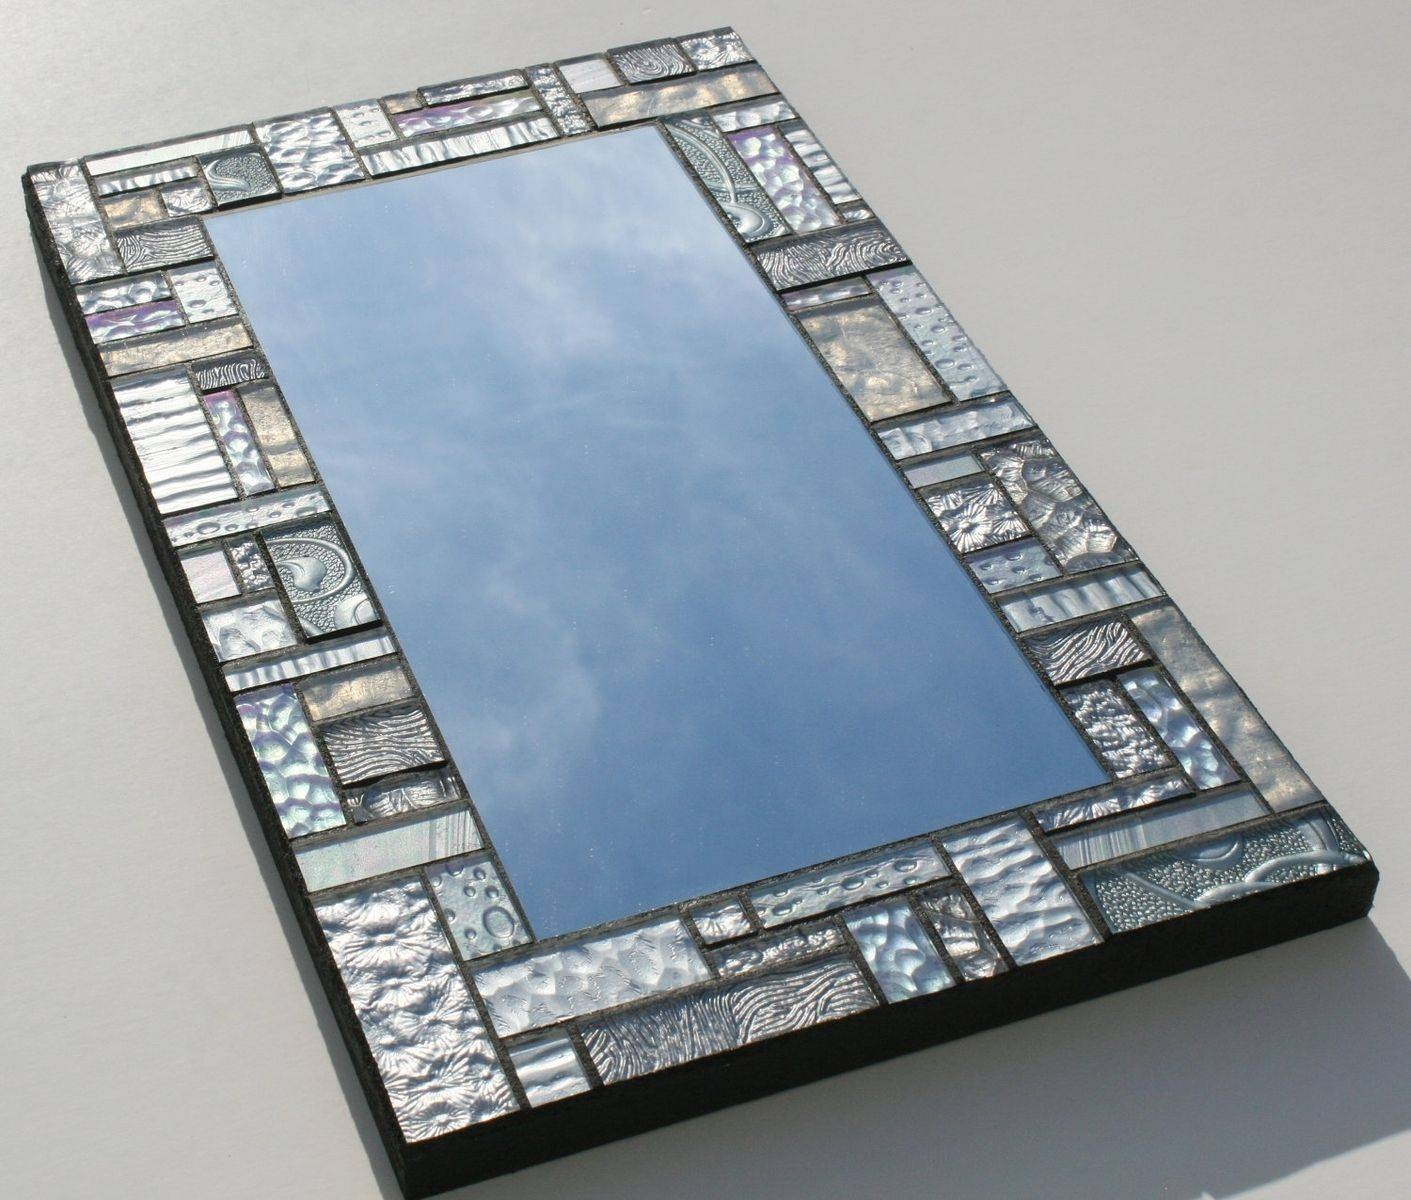 Stylish Mosaic Wall Mirror – House Photos With Regard To Large Mosaic Mirrors (View 14 of 15)